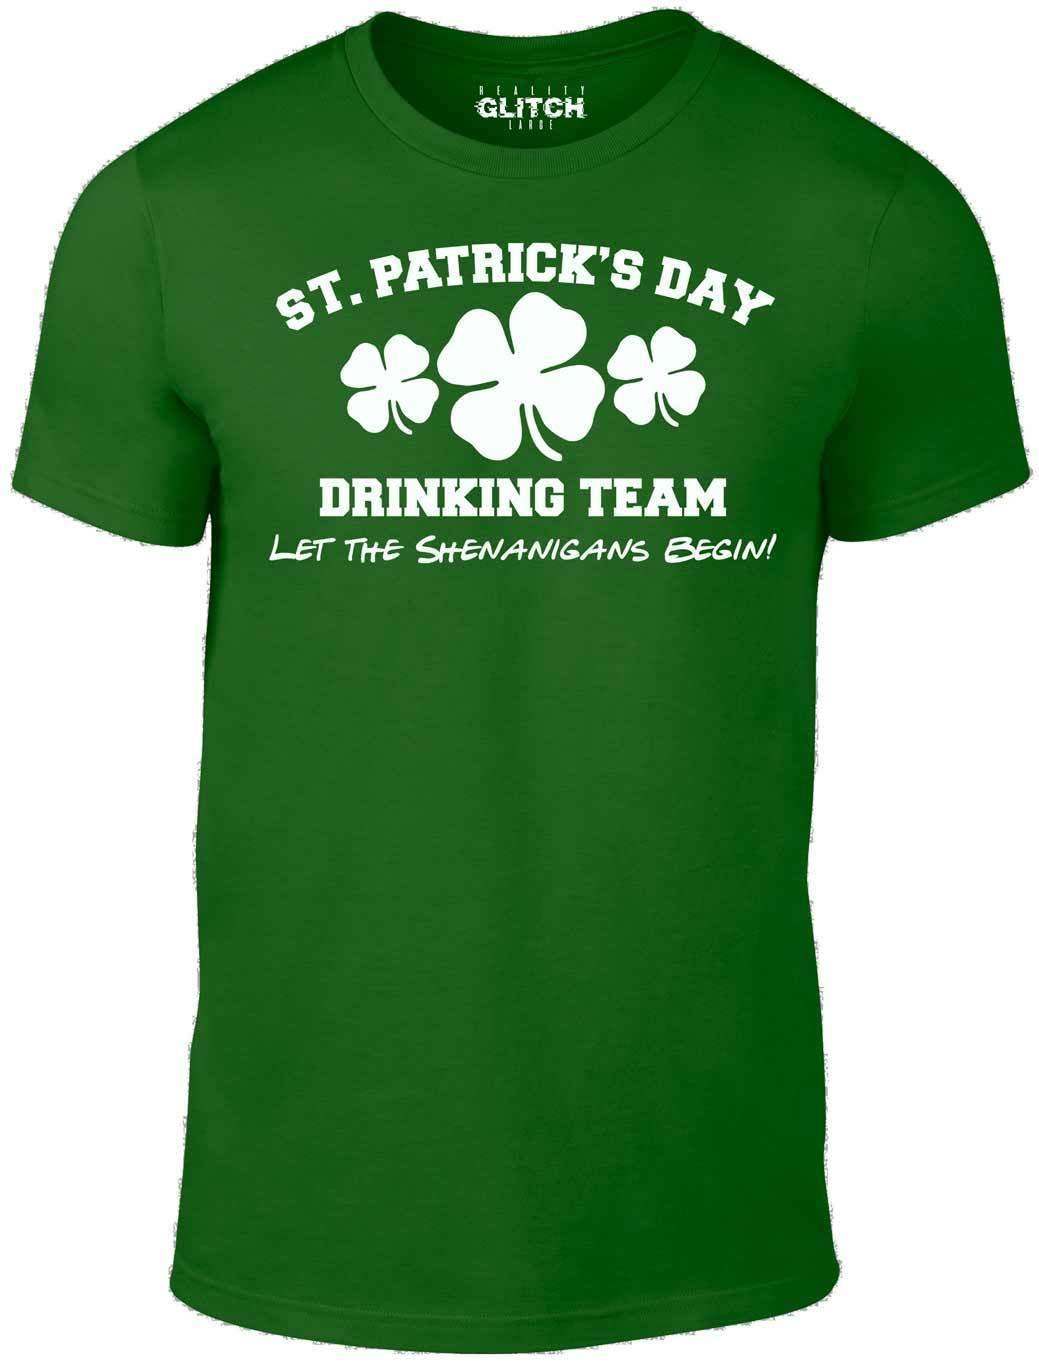 16205a1826b Men S St. Patrick S Day Drinking Team T Shirt Gift Funny Ireland Joke Irish  T Shirt For A Tee Shirt From Amesion21